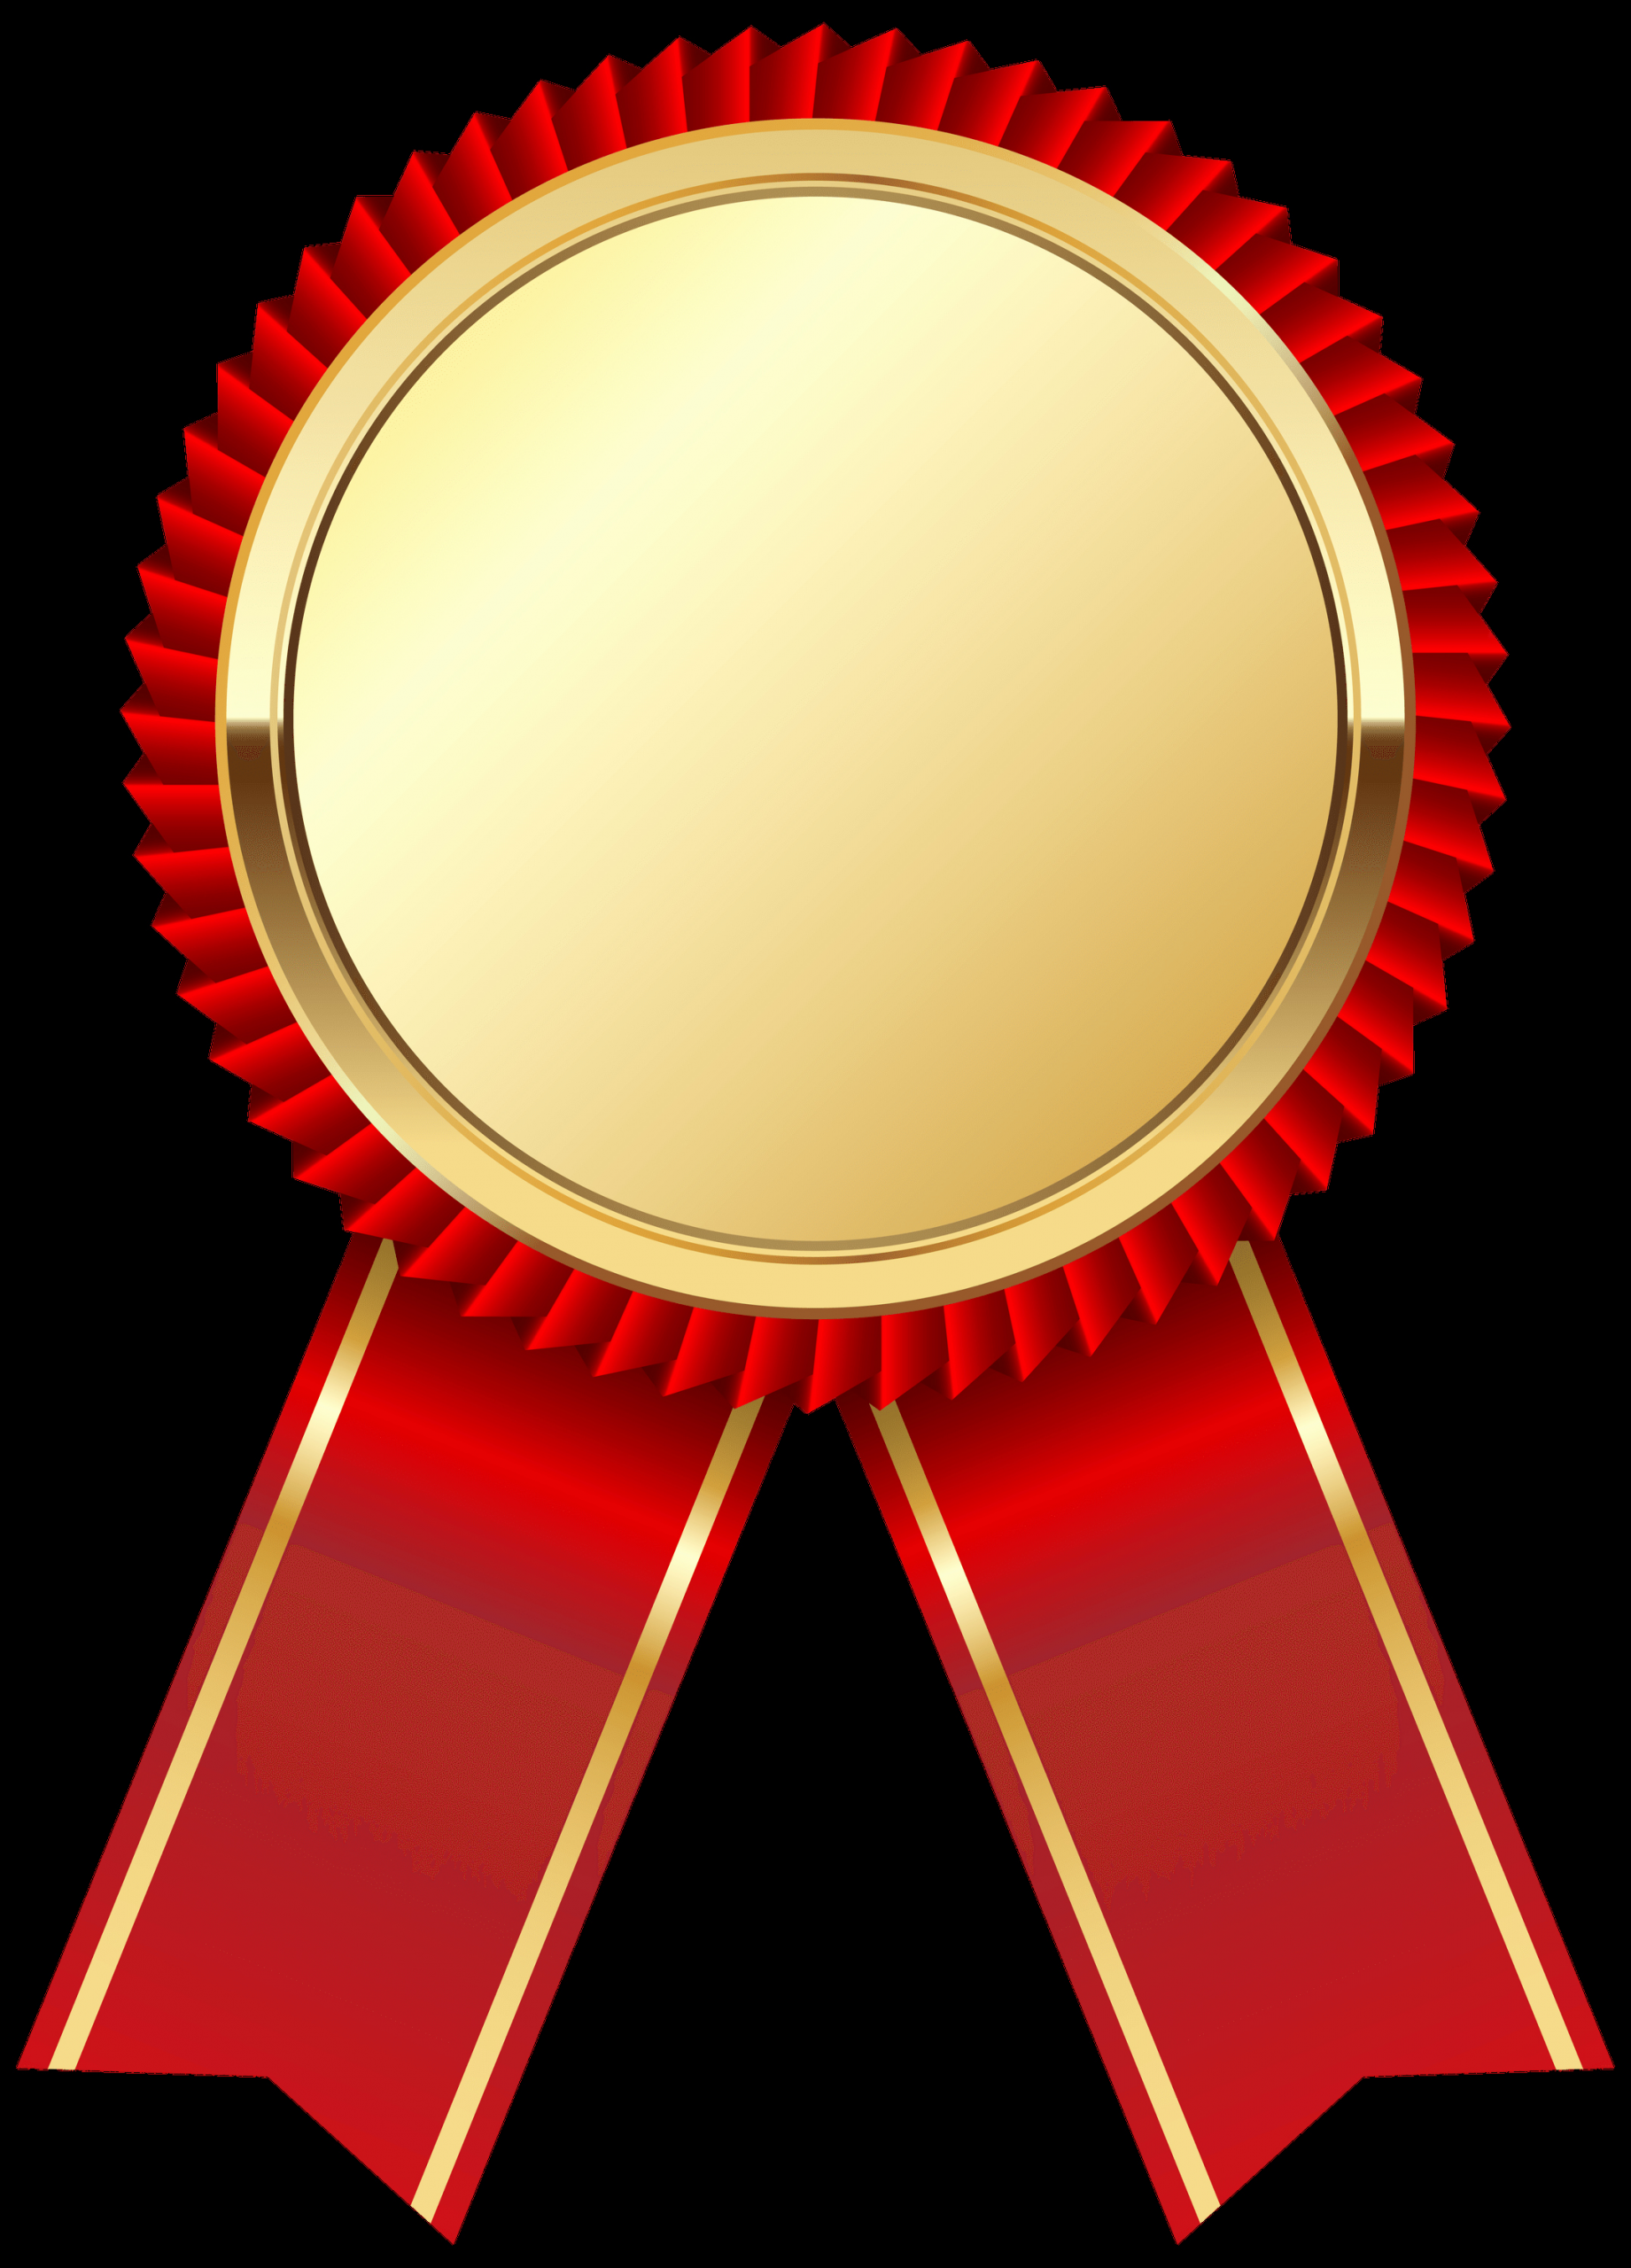 Red Ribbon Week Certificate Template Awesome Gold Medal Ribbon Transparent Png Stickpng